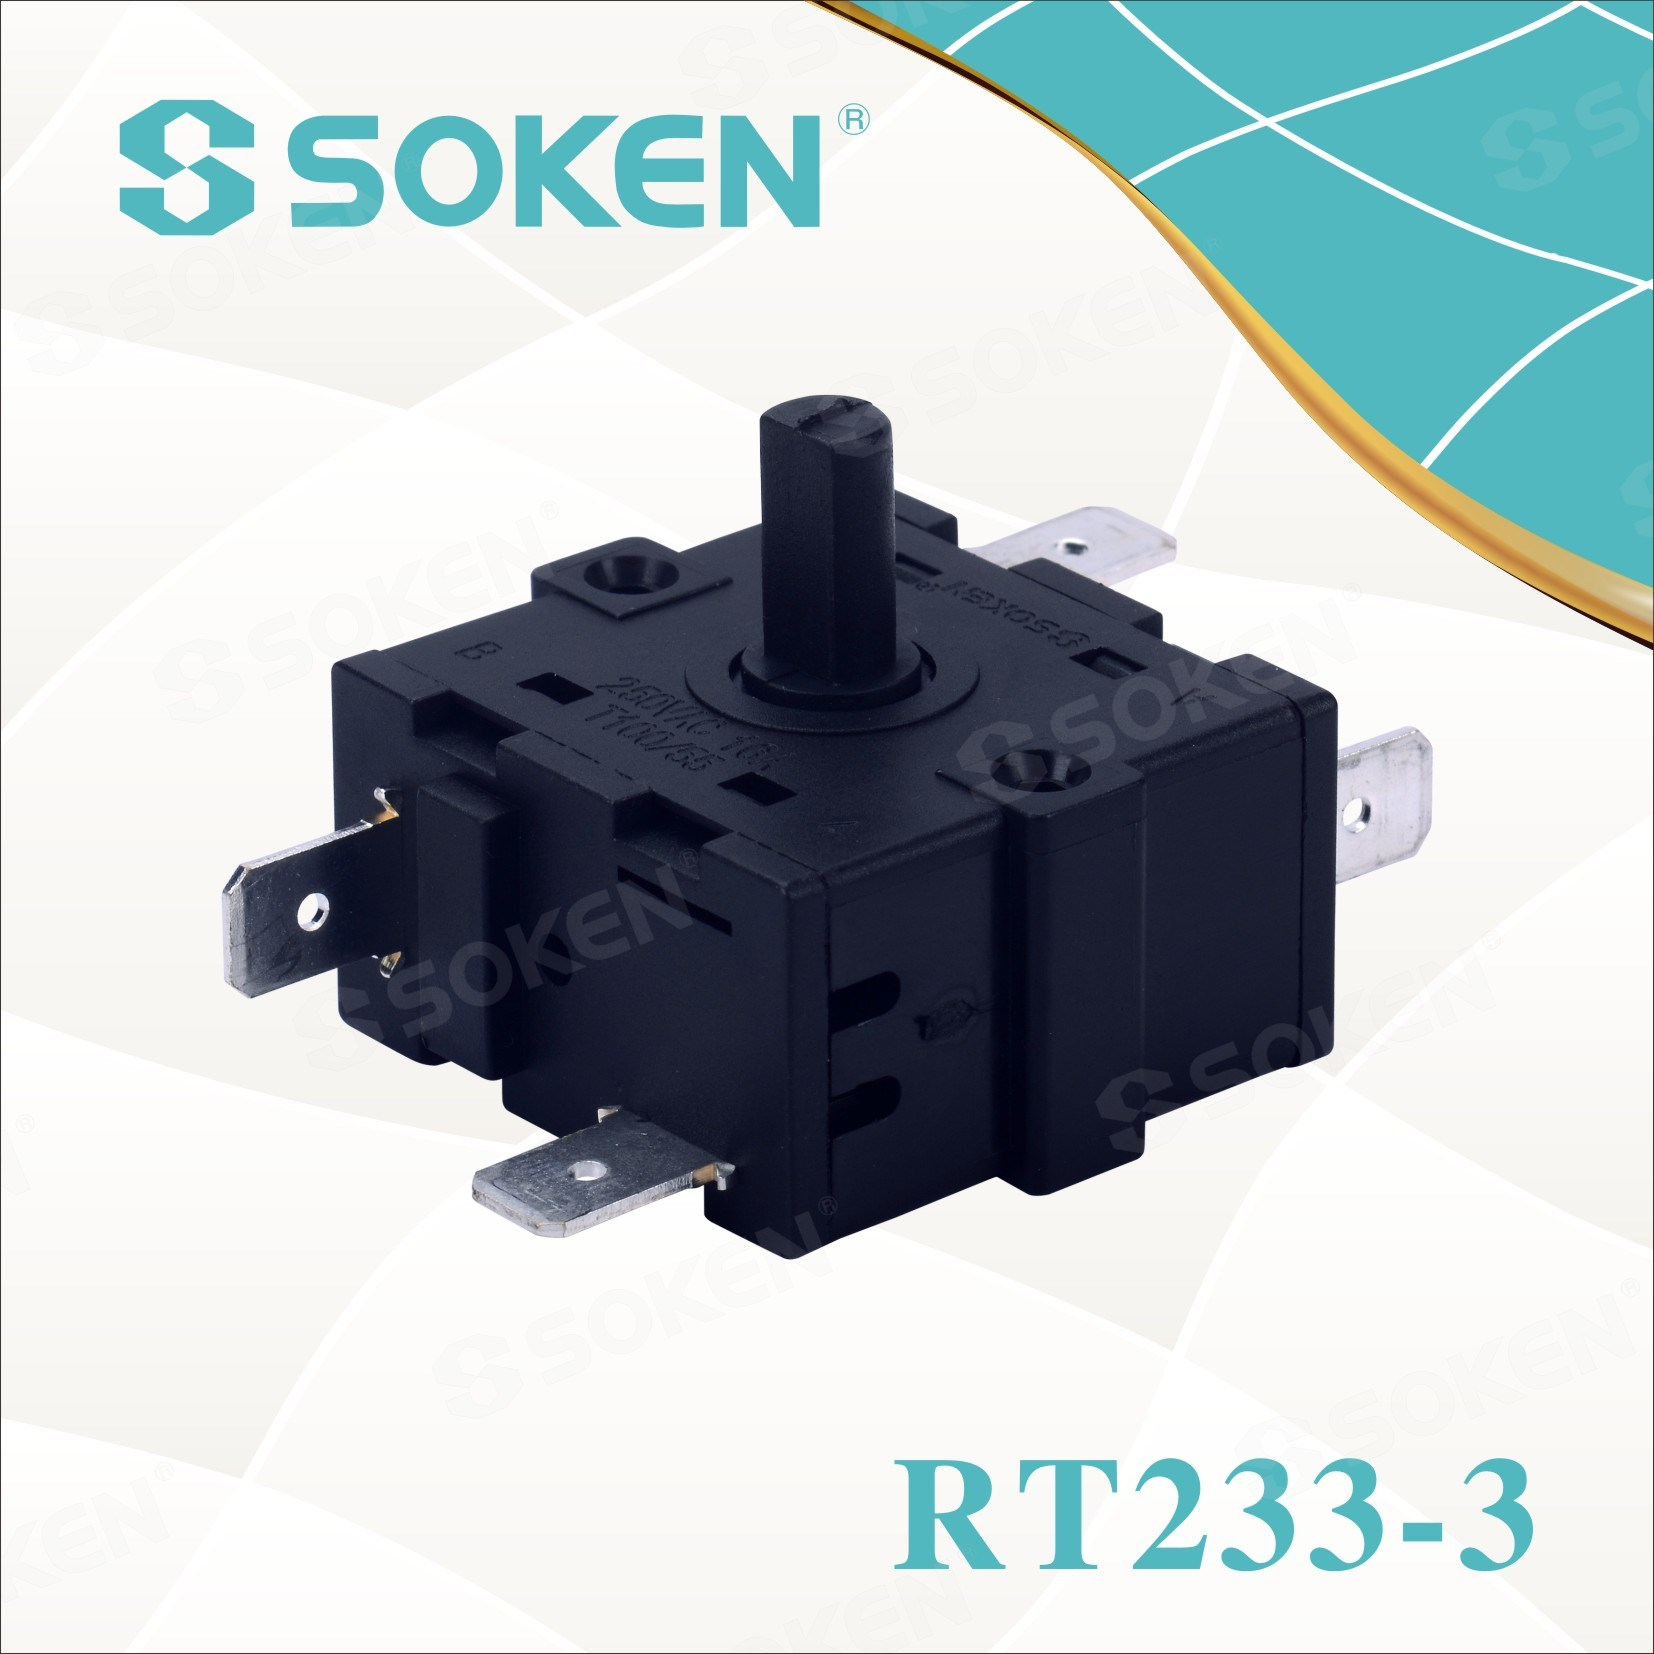 Good User Reputation For 20a 125vac Kcd2 Rocker Switch Soken 3 Speed Rotary Wiring Diagram Juicer Master